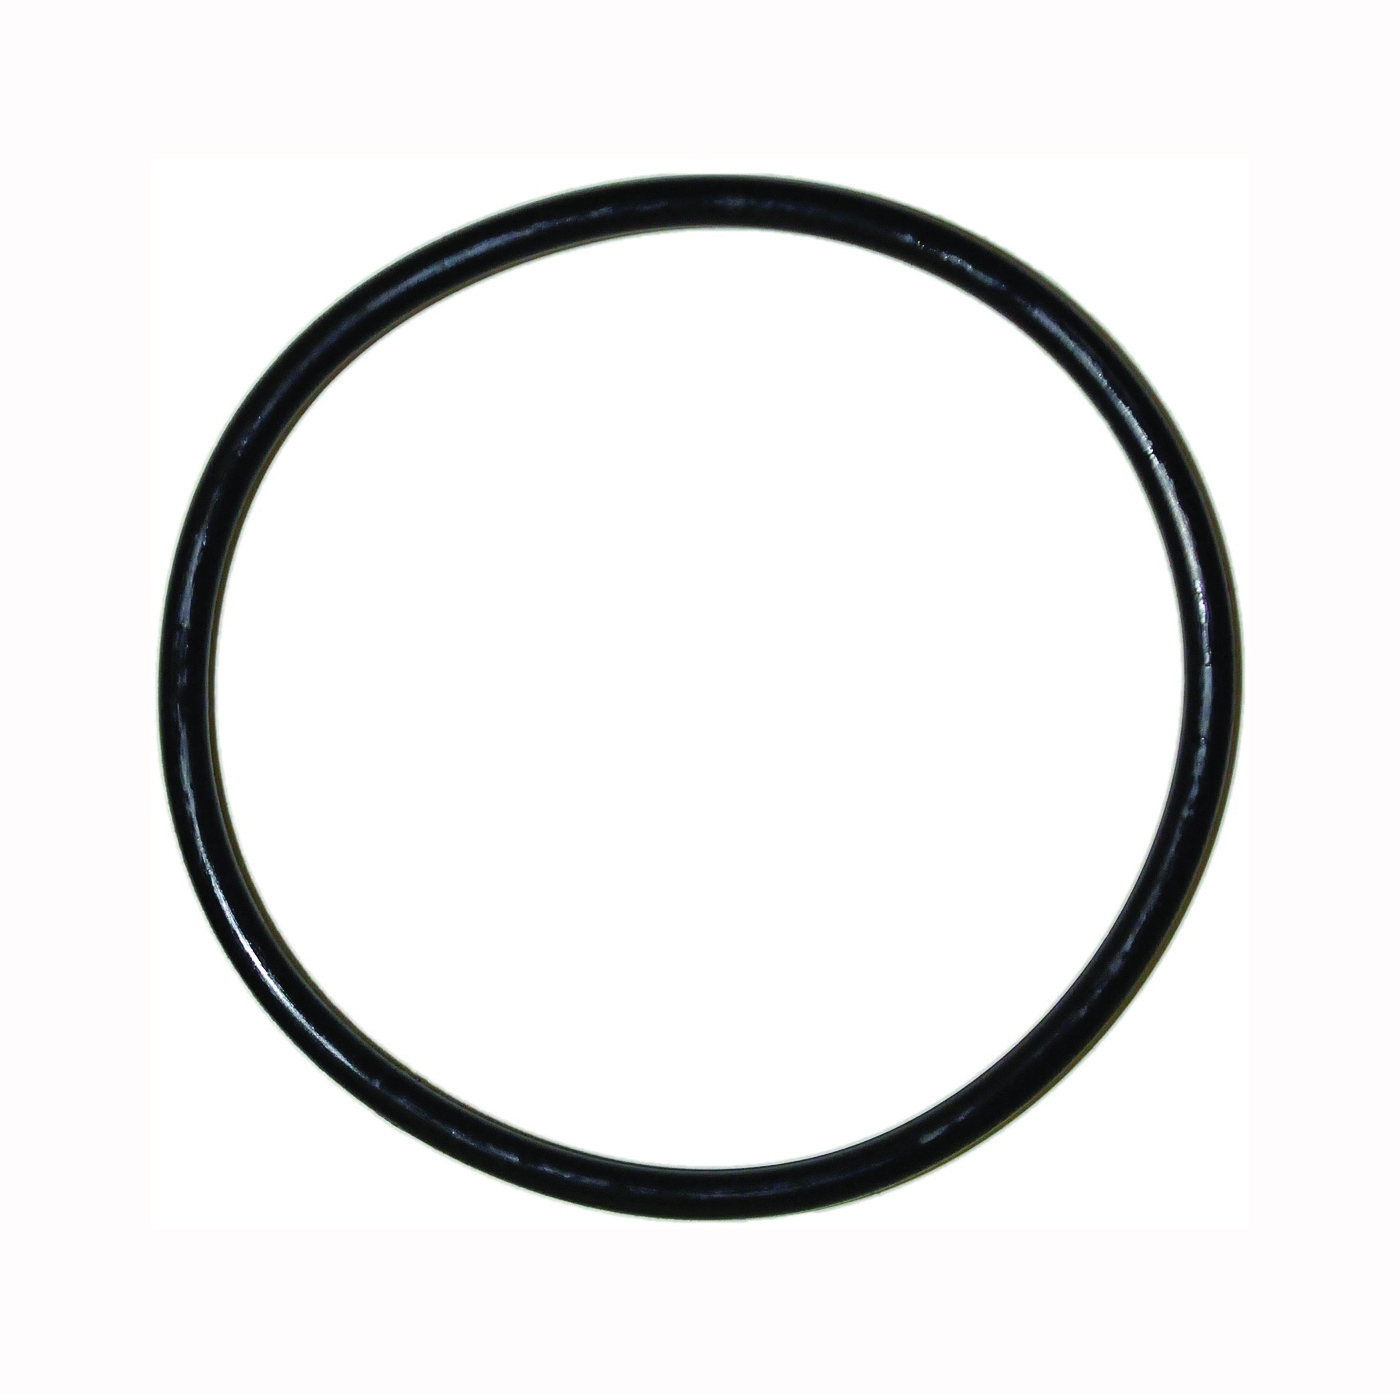 Picture of Danco 35720B Faucet O-Ring, #73, 2 in ID x 2-3/16 in OD Dia, 3/32 in Thick, Buna-N, For: American Standard Faucets